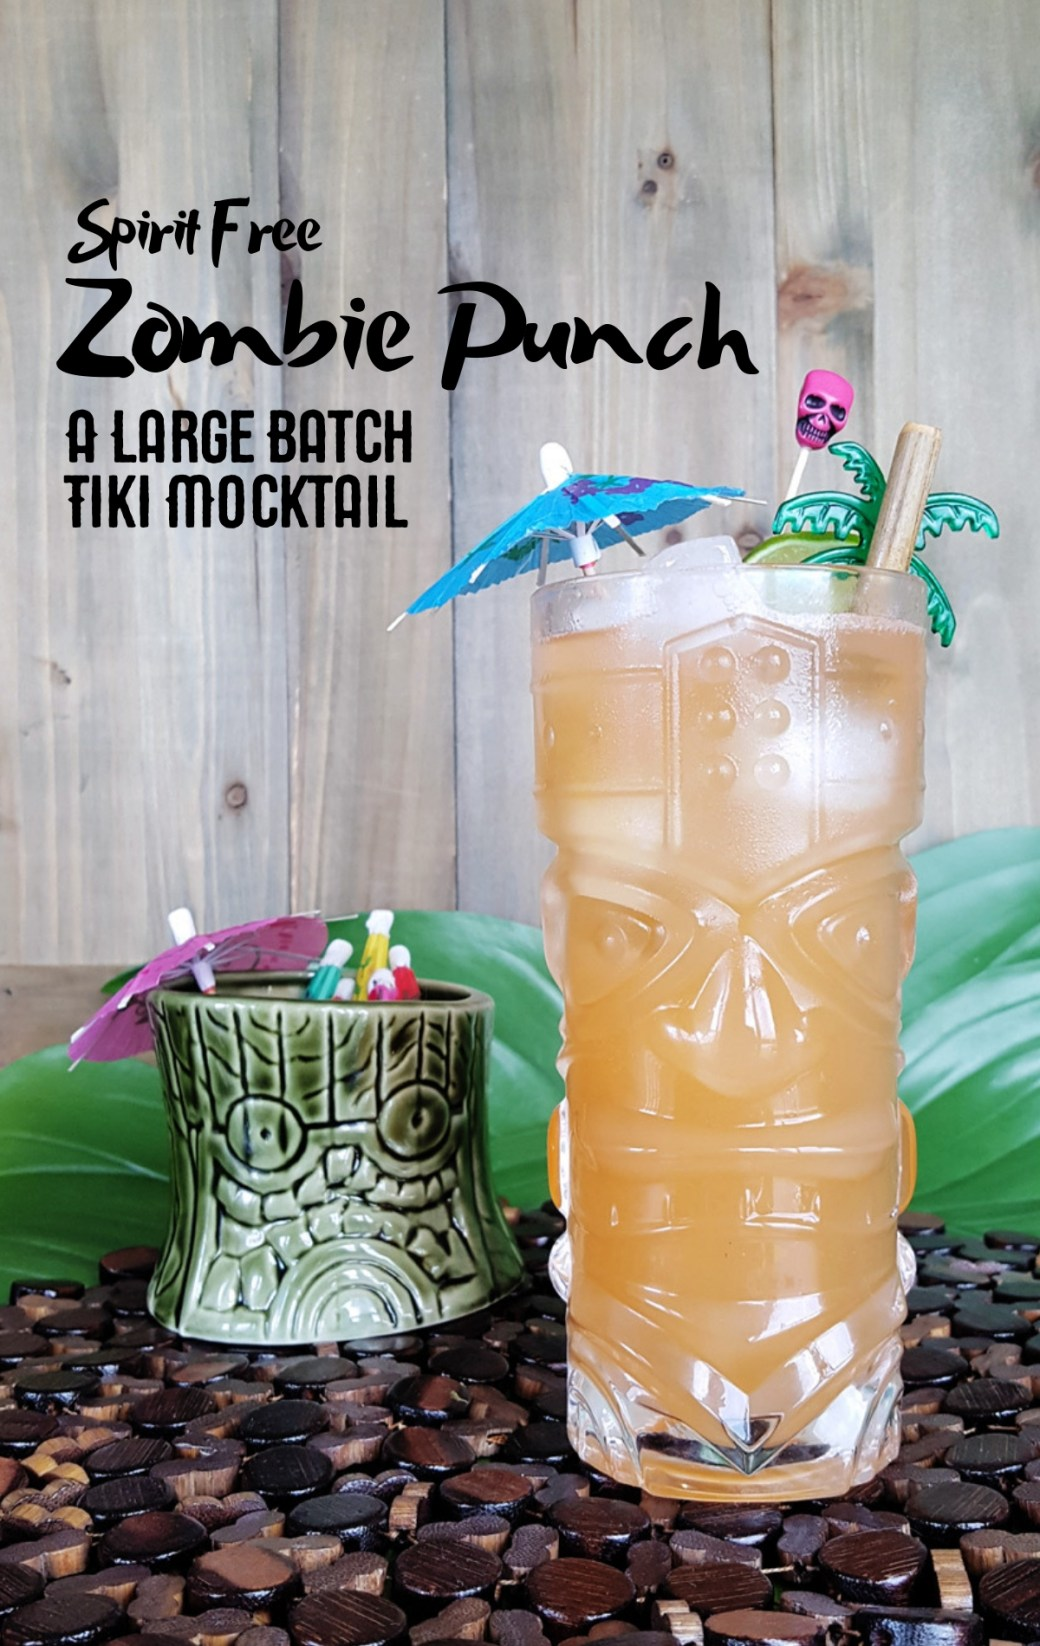 This spirit free Zombie Punch is a tasty non-alcoholic take on the tropical sweet and bitter flavors of a classic tiki cocktail. #tropical #mocktail #punch #party | FeastInThyme.com